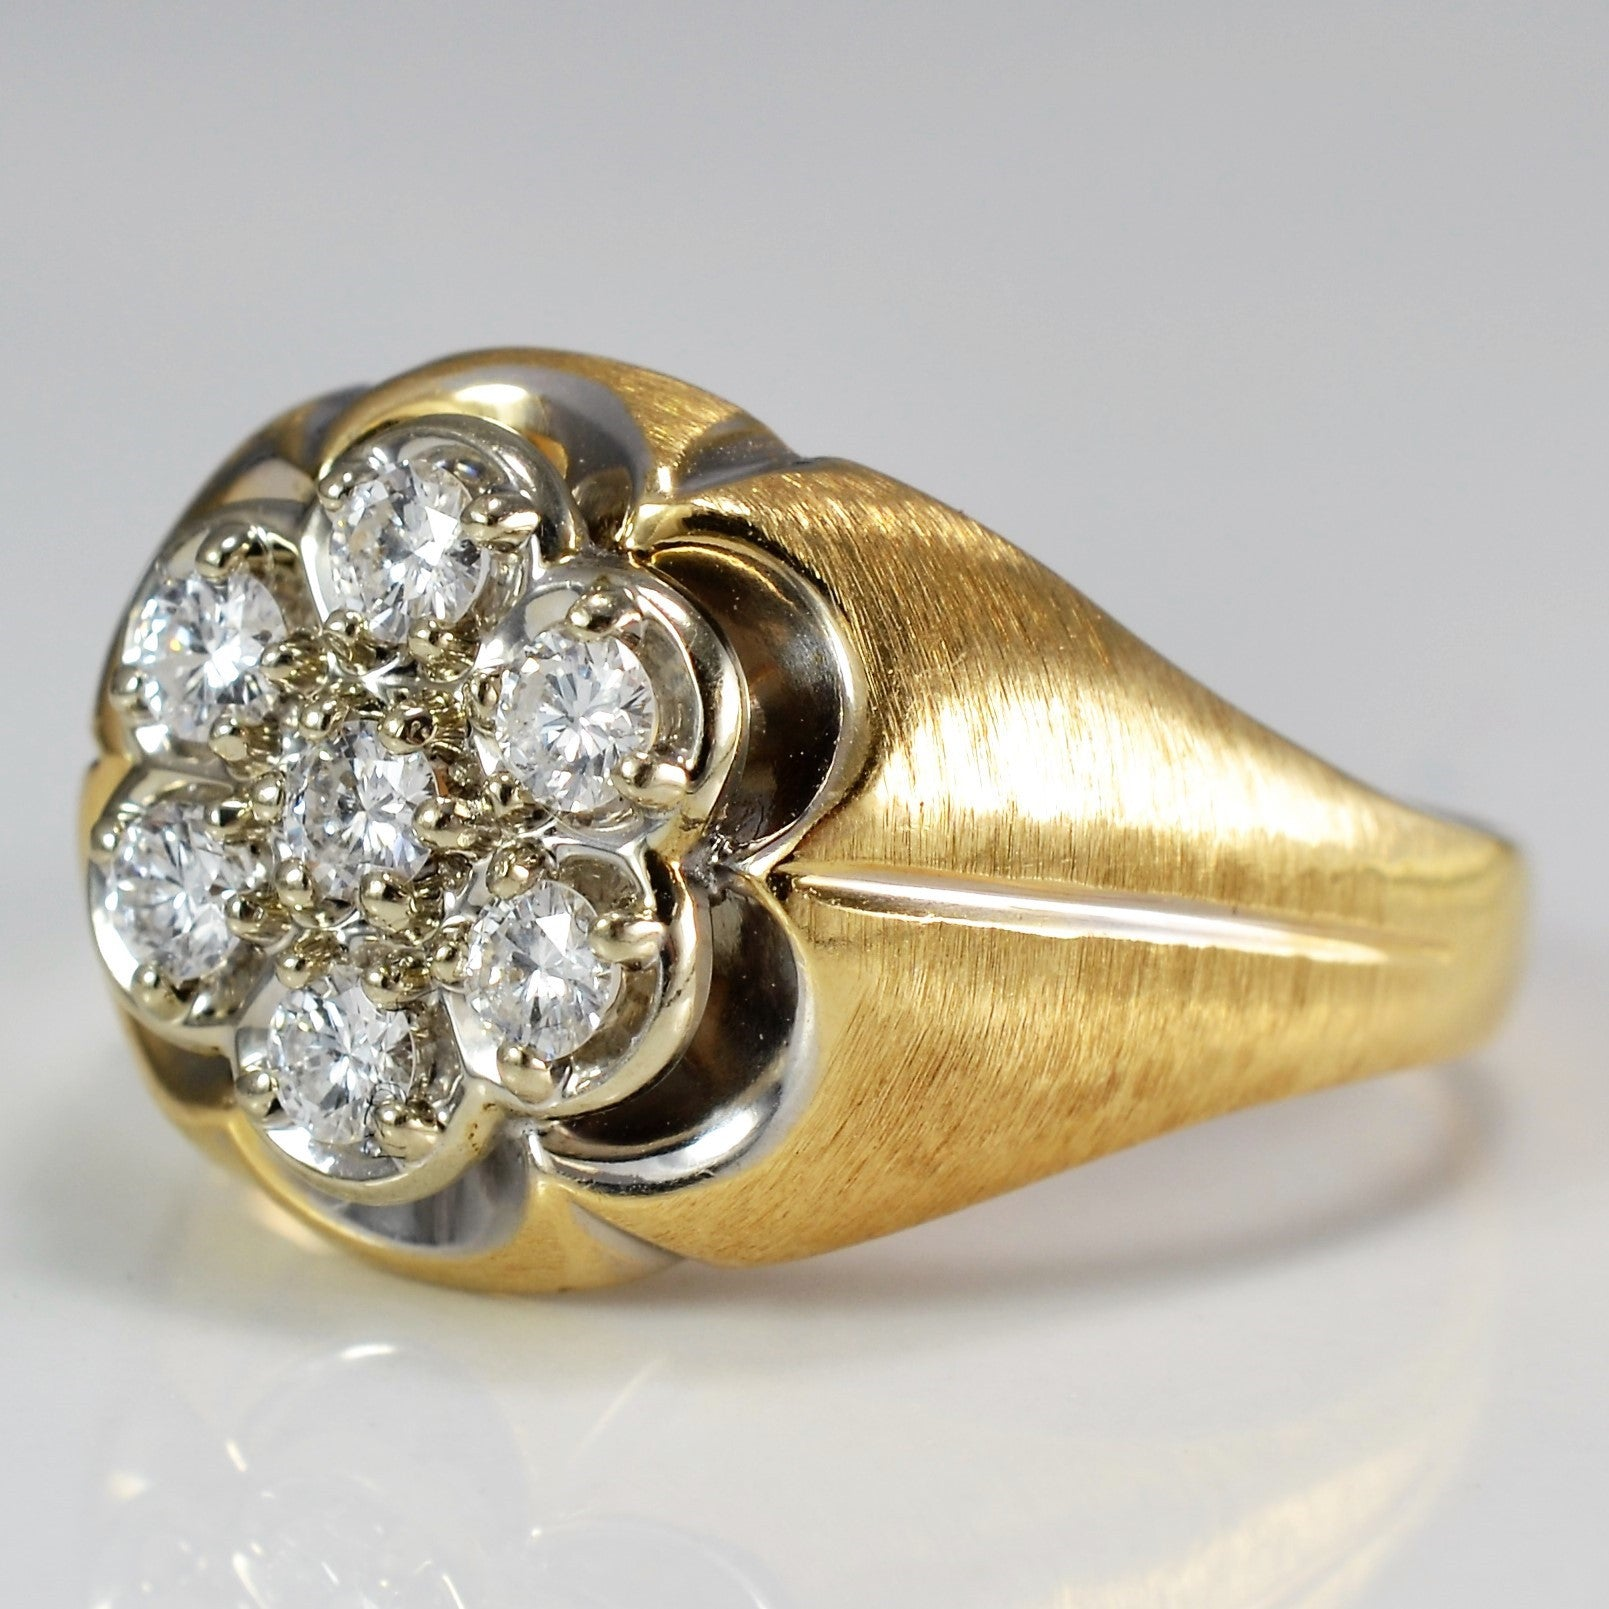 Large Diamond Cluster Cocktail Ring | 0.35 ctw, SZ 10 |